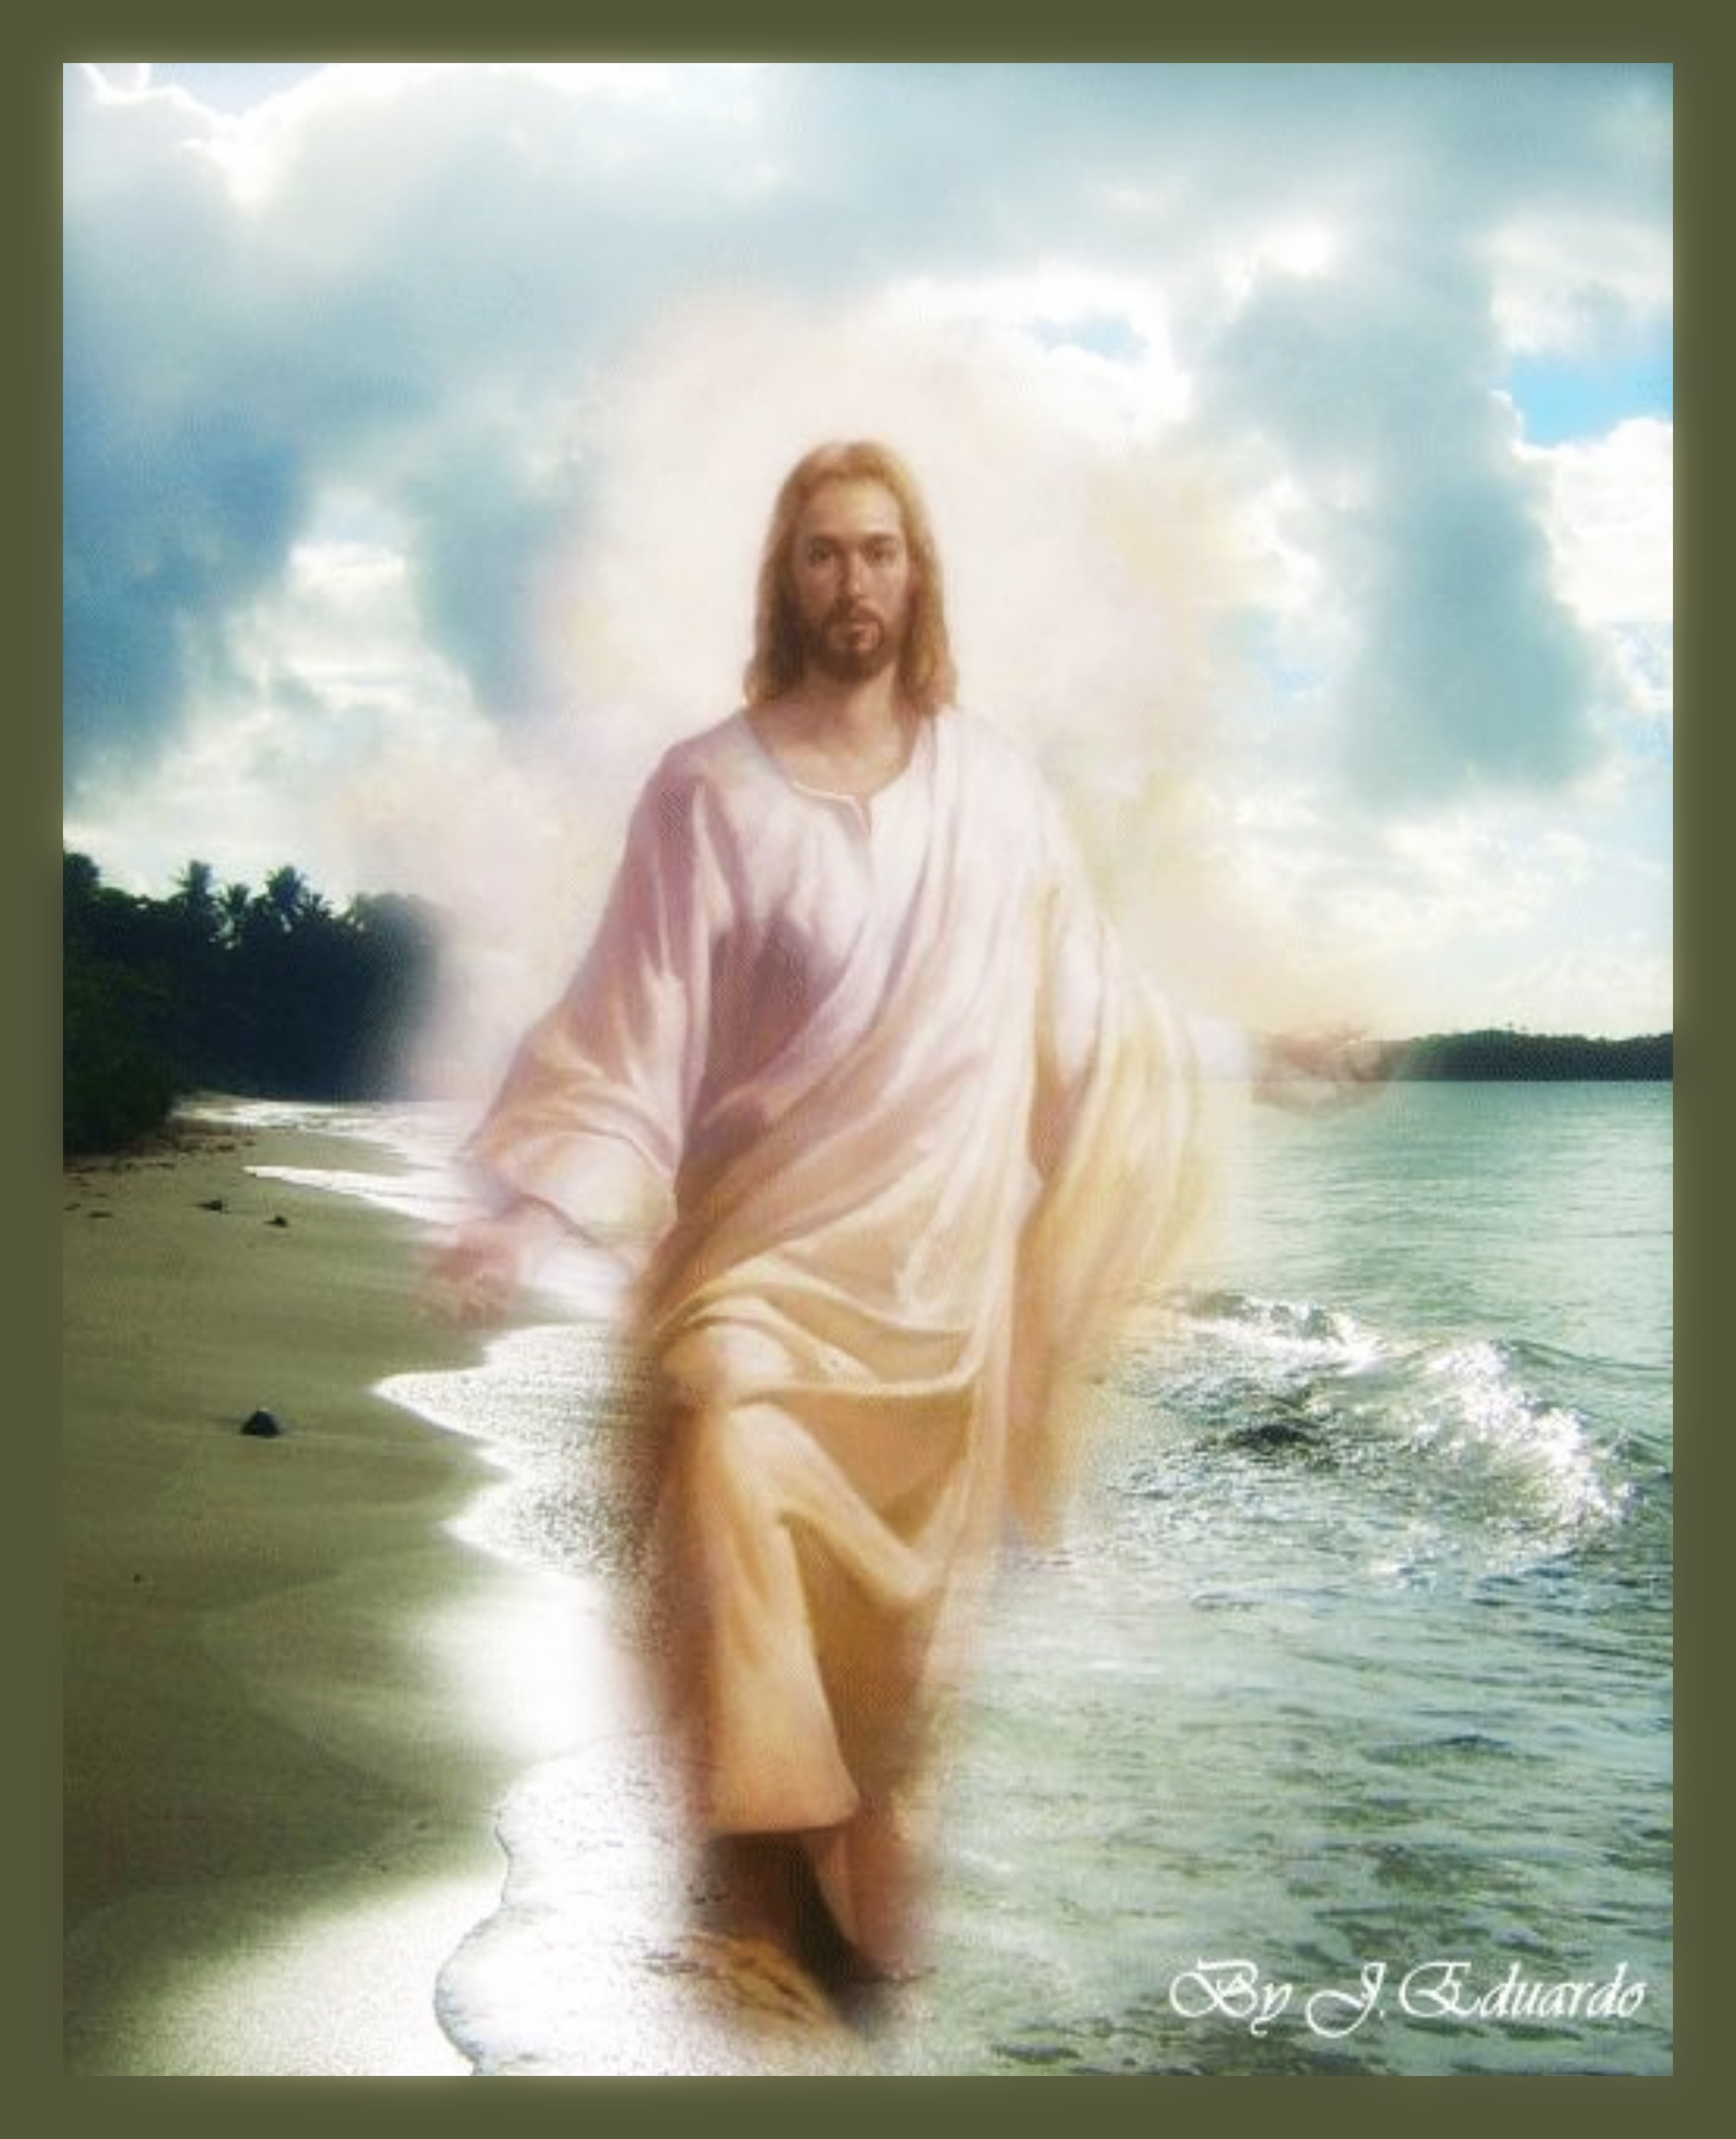 a religious essay on jesus christ I believe in jesus christ religion essay religious practices and proclamations by which devotees worshipped many gods to say i.